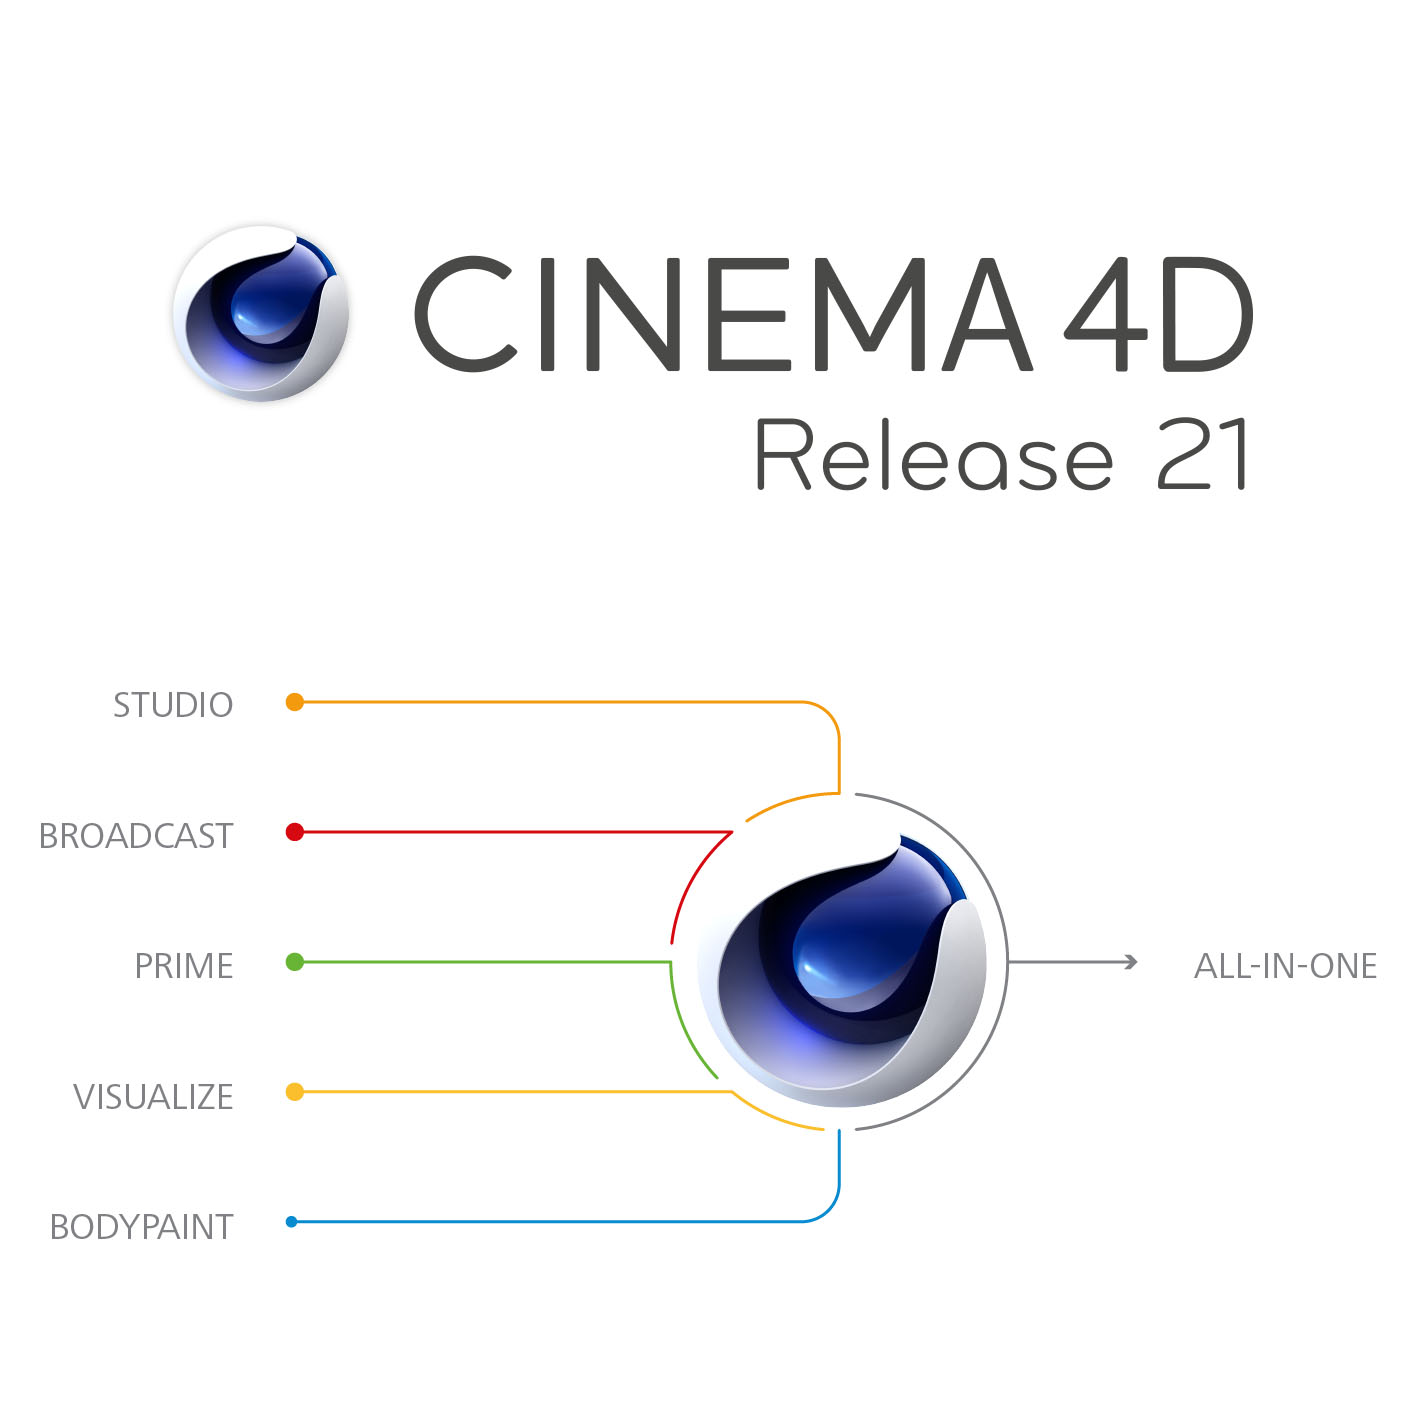 CINEMA 4D R21 Studio